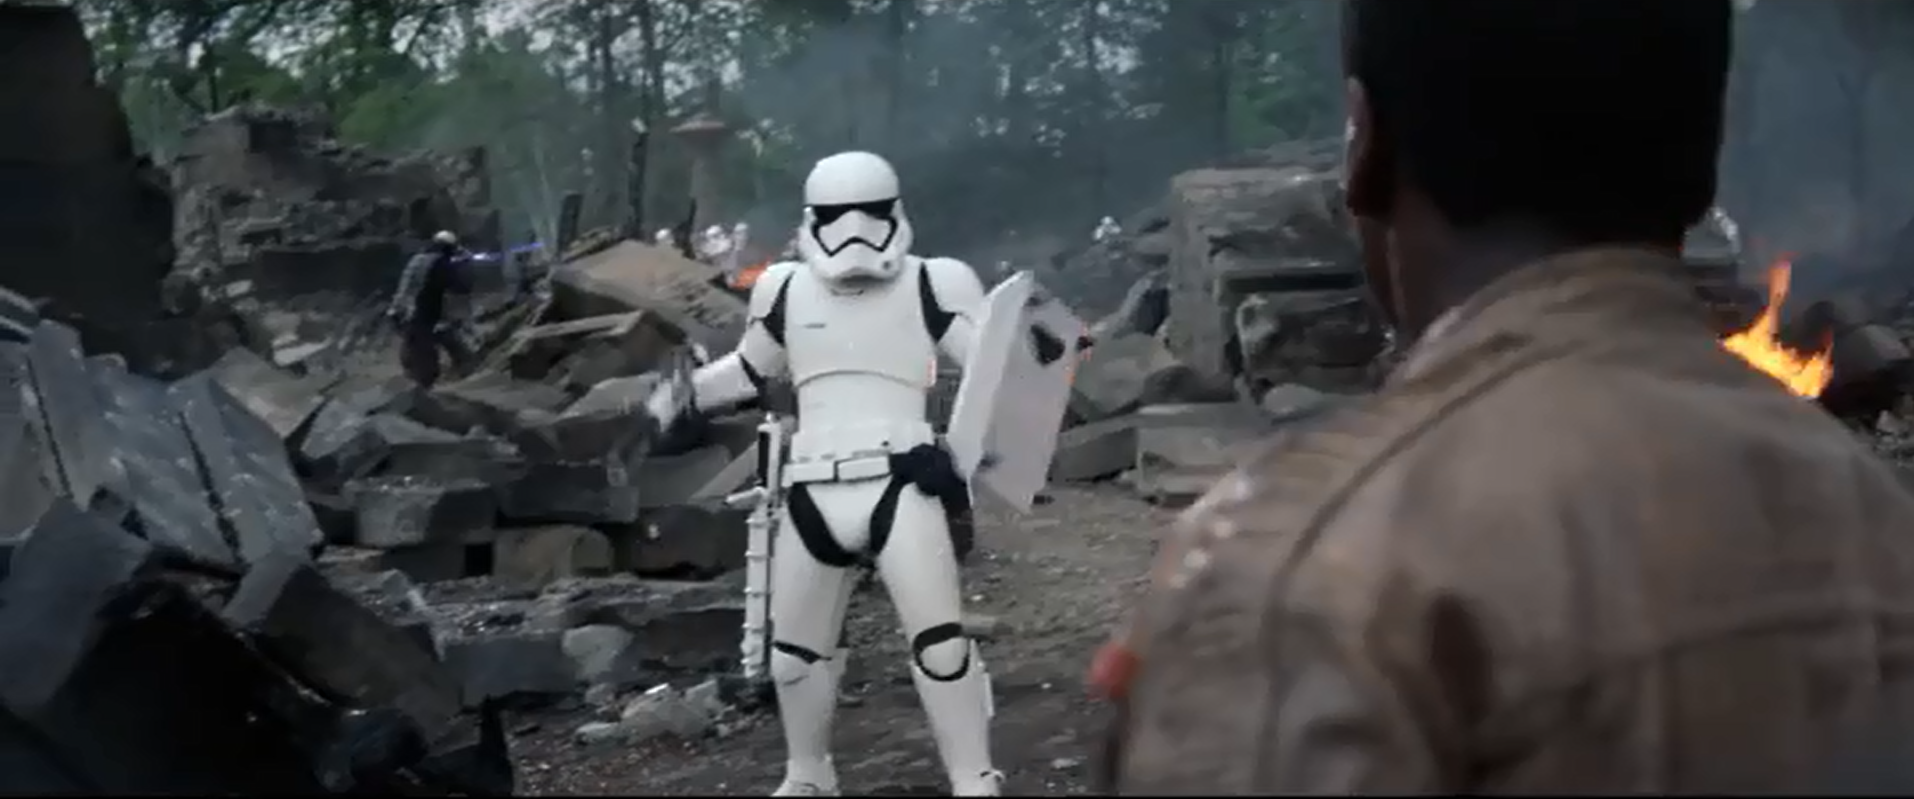 Probably still my favorite Trooper, shame he tosses that shield though.